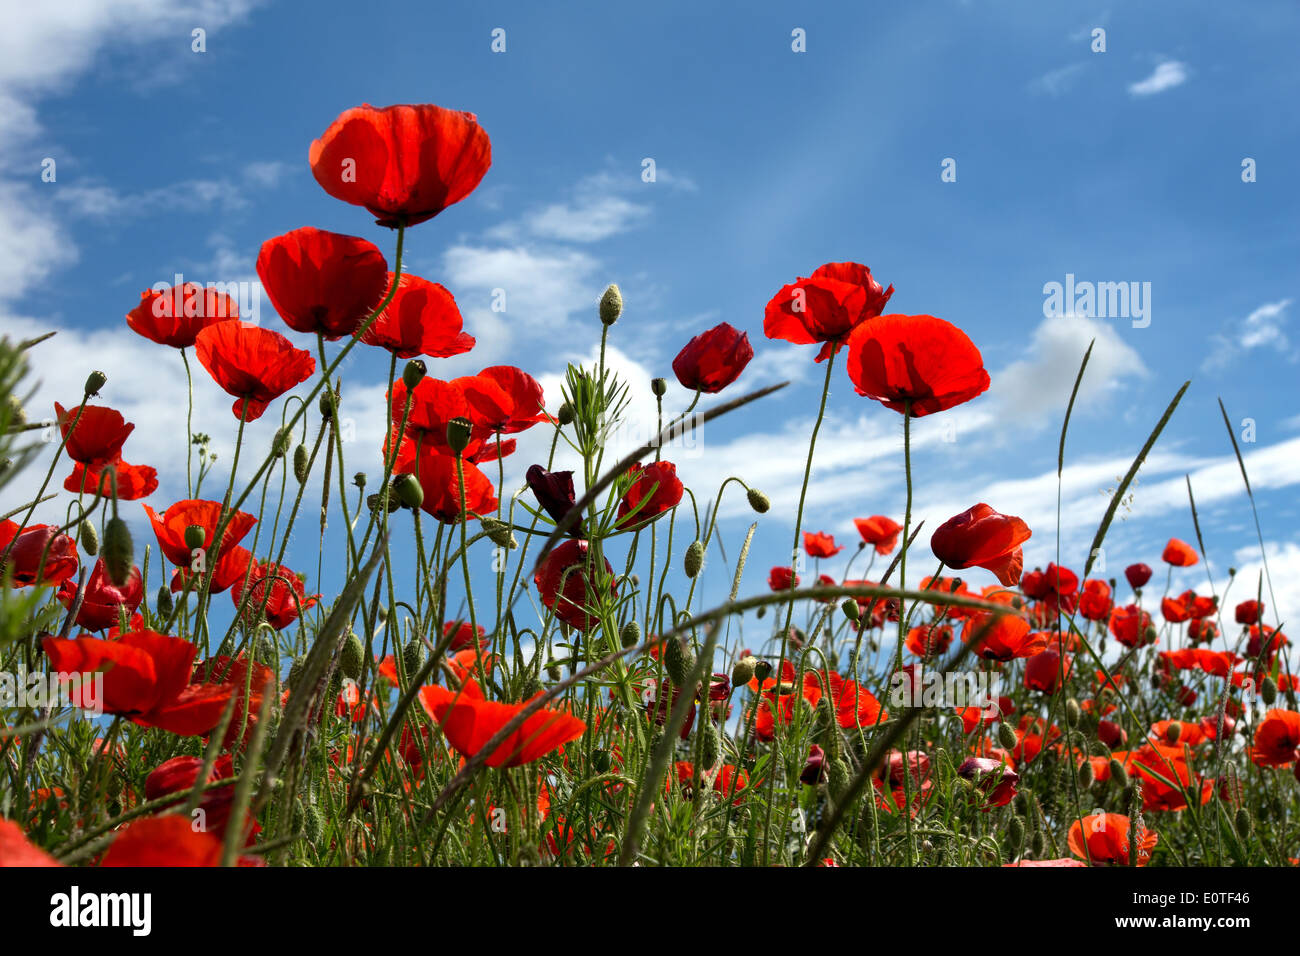 Poppies field on blue sky and clouds background - Stock Image